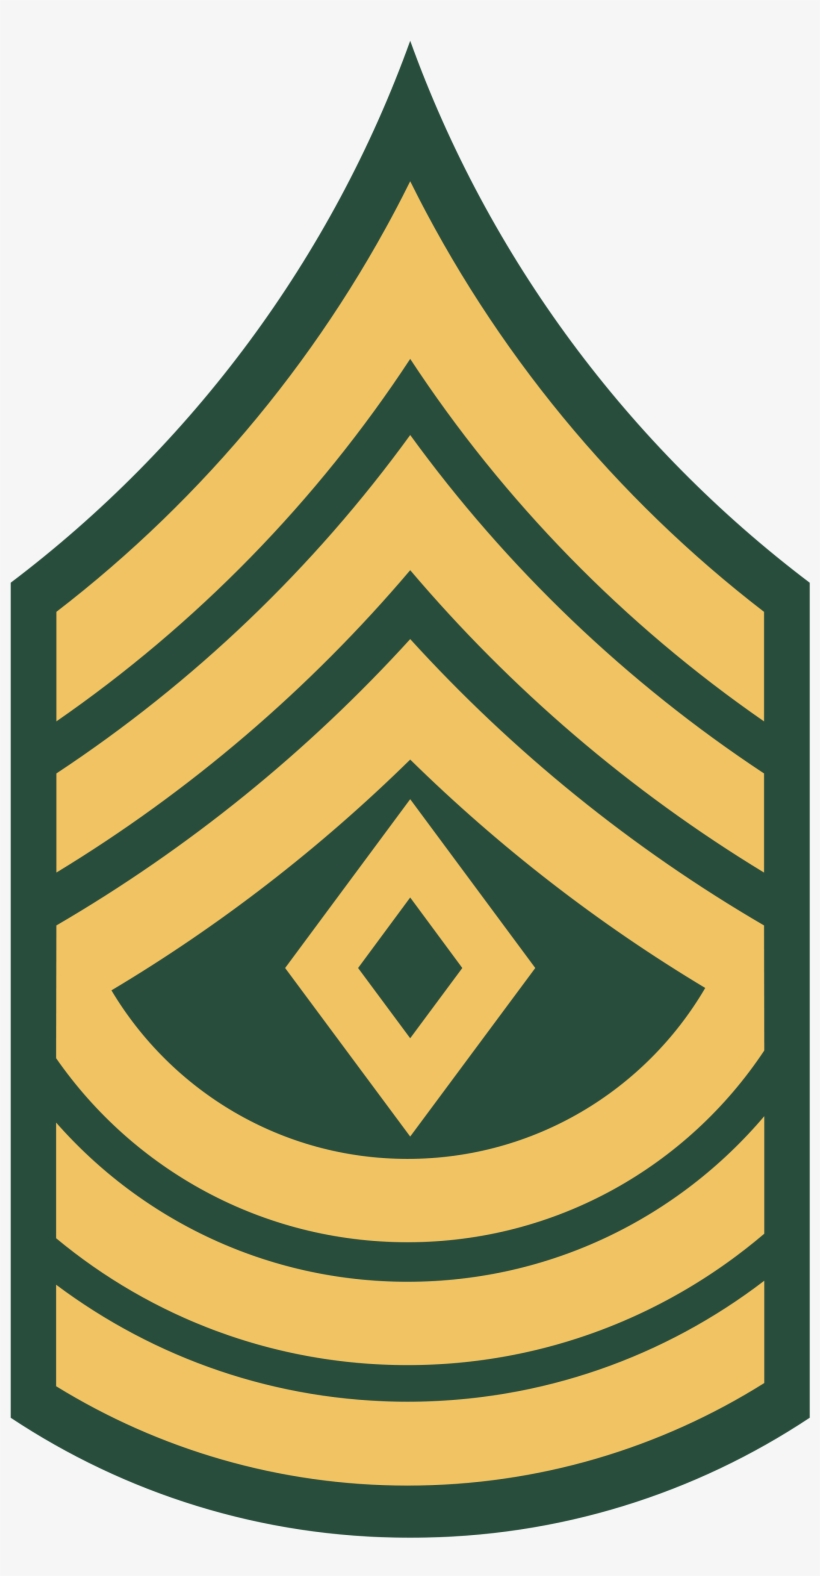 Military Stripes Clipart Clip Art Library - Army First Sergeant Rank, transparent png #309221